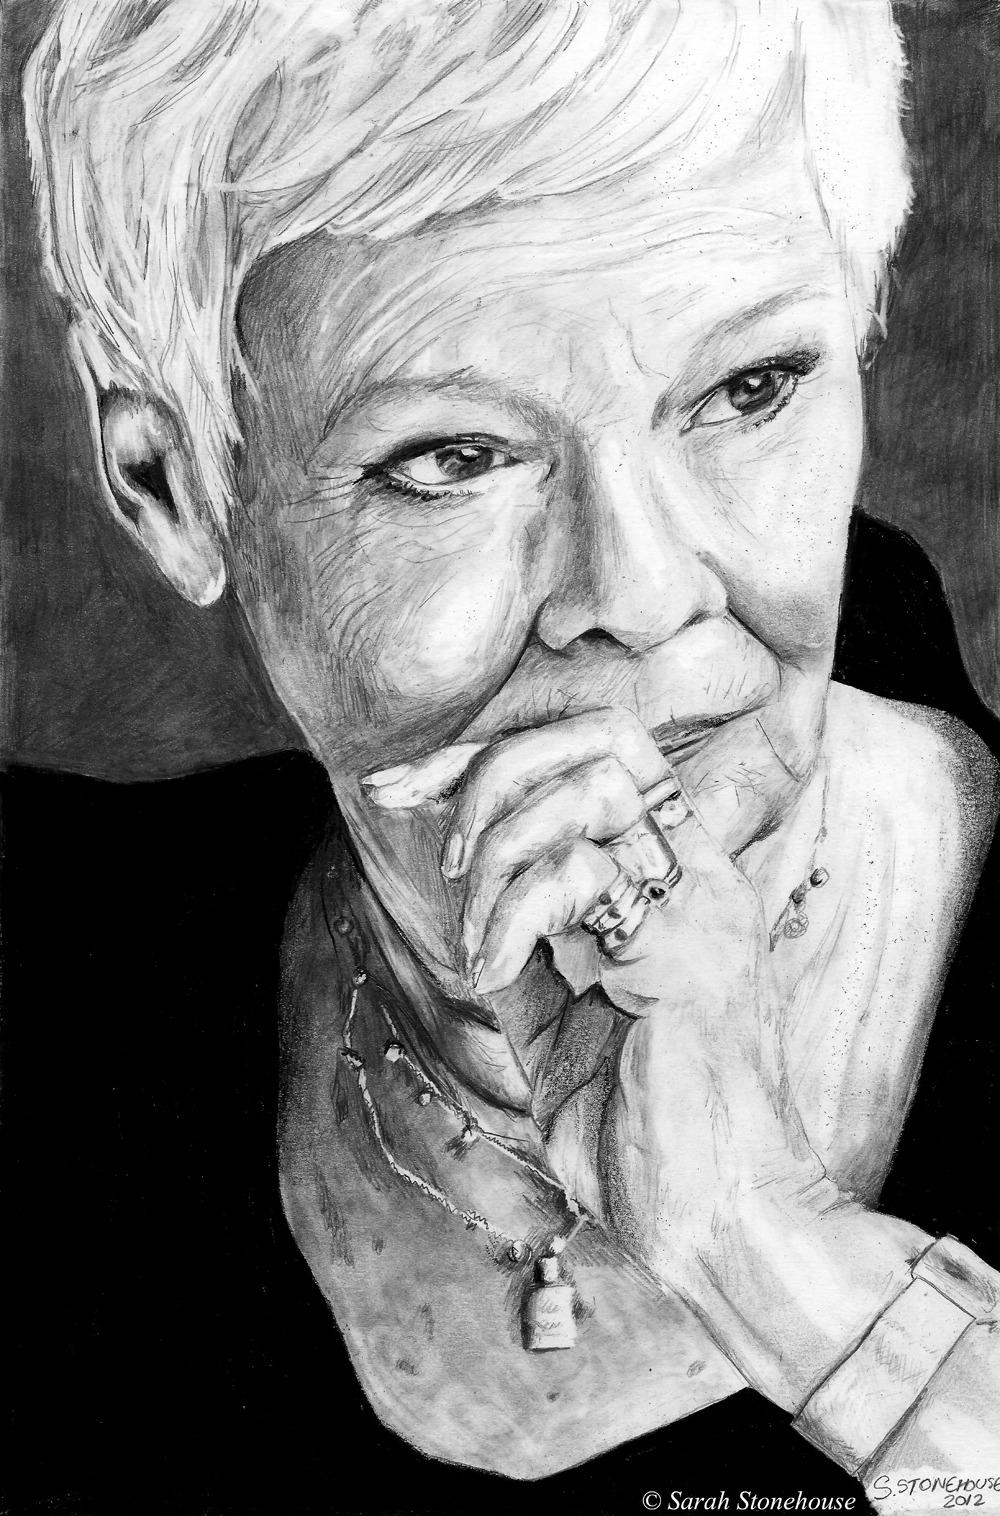 "Judi DenchA4, graphite pencilsApprox 5 1/2 hours takenDrawn by Sarah Stonehouse (http://mydustlandfairytale.tumblr.com)  … because I frickin' adore this woman. ""Of course I have a temper. Who hasn't? And the older I get the more angry I get about things. It's not sudden anger, it smoulders and then if I really let it go on for a bit the shit hits the fan. I get very angry about general injustice. I get angry about the way people say 'Tomorrow X will make a speech about X'. Just let them say it. I get furious about the whole business of not allowing conkers in school, and banning things because they are supposedly dangerous. I am riveted by the current Iraq inquiry, though angry already because I feel it will end with a report and nobody's actually going to be arraigned for what happened."""